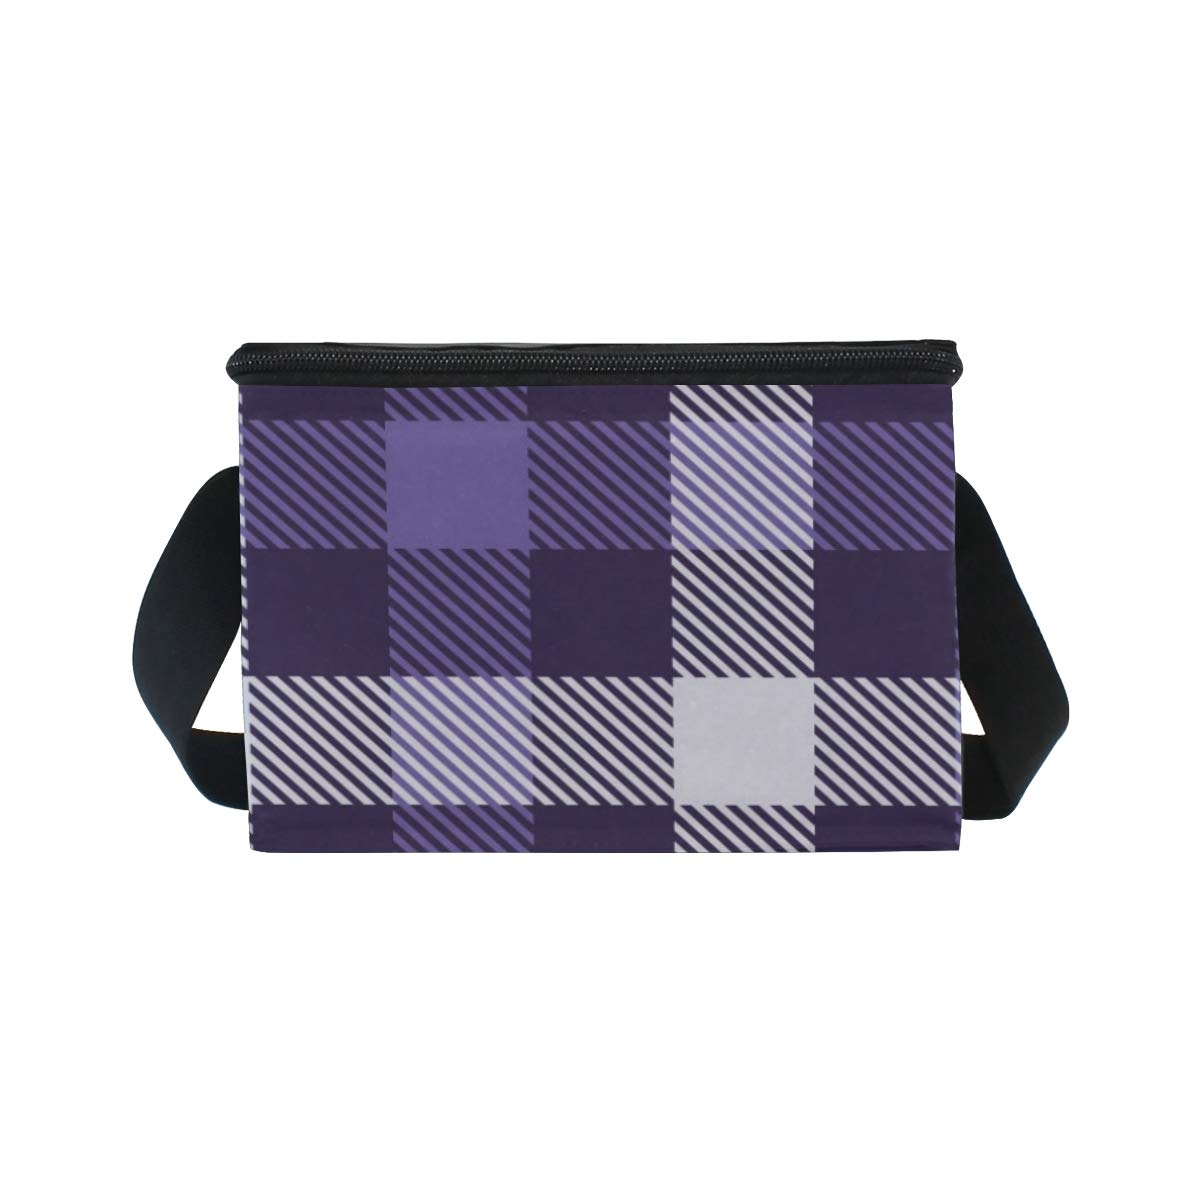 ab9c5ab9db53 Amazon.com: Anmarco Purple Plaid Checked Insulated Lunch Bag Lunch ...